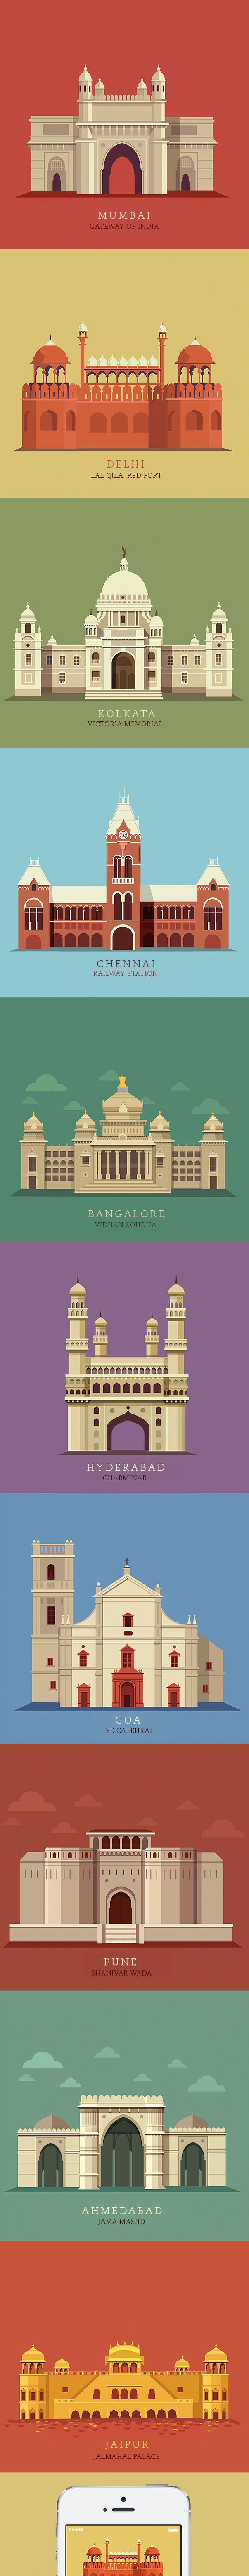 Illustrations of the10 popular cities in India created for the Times Group. Each monument has a very high historic and cultural importance in the cities they are located and are icons for each city.